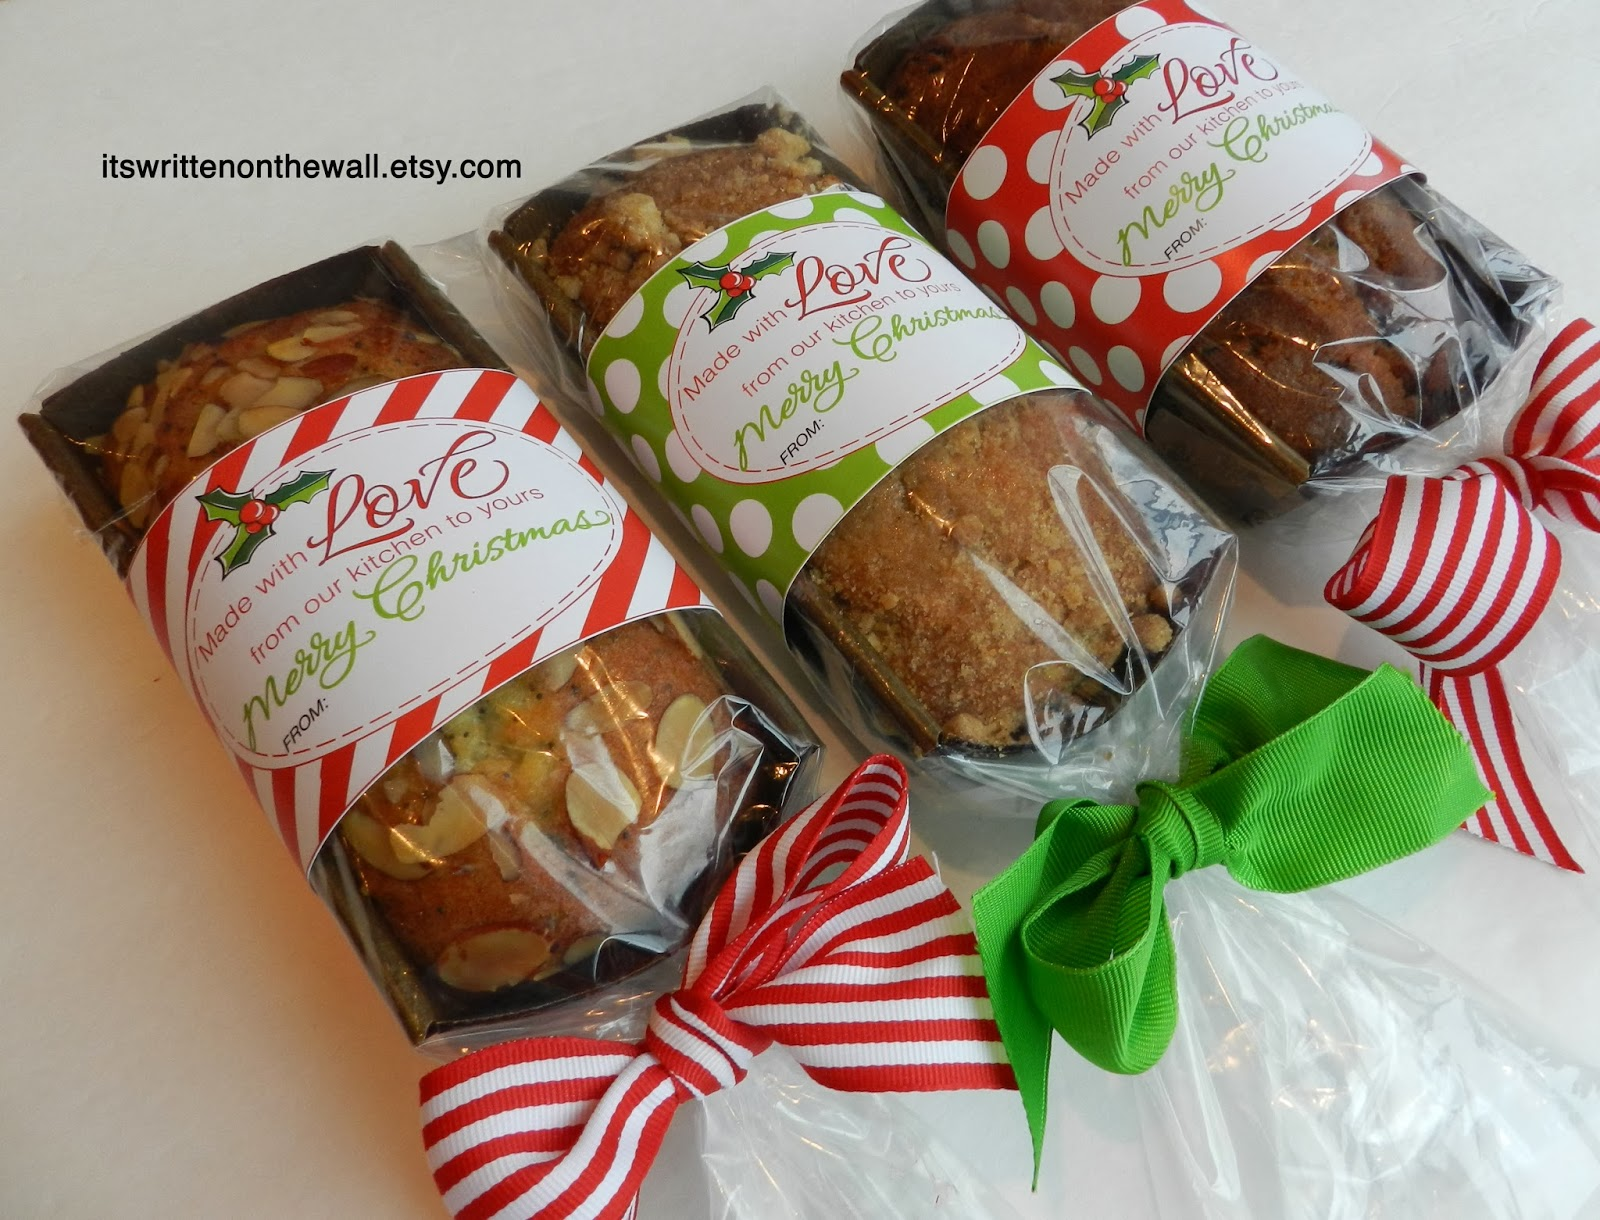 Christmas food gifts ideas for neighbors